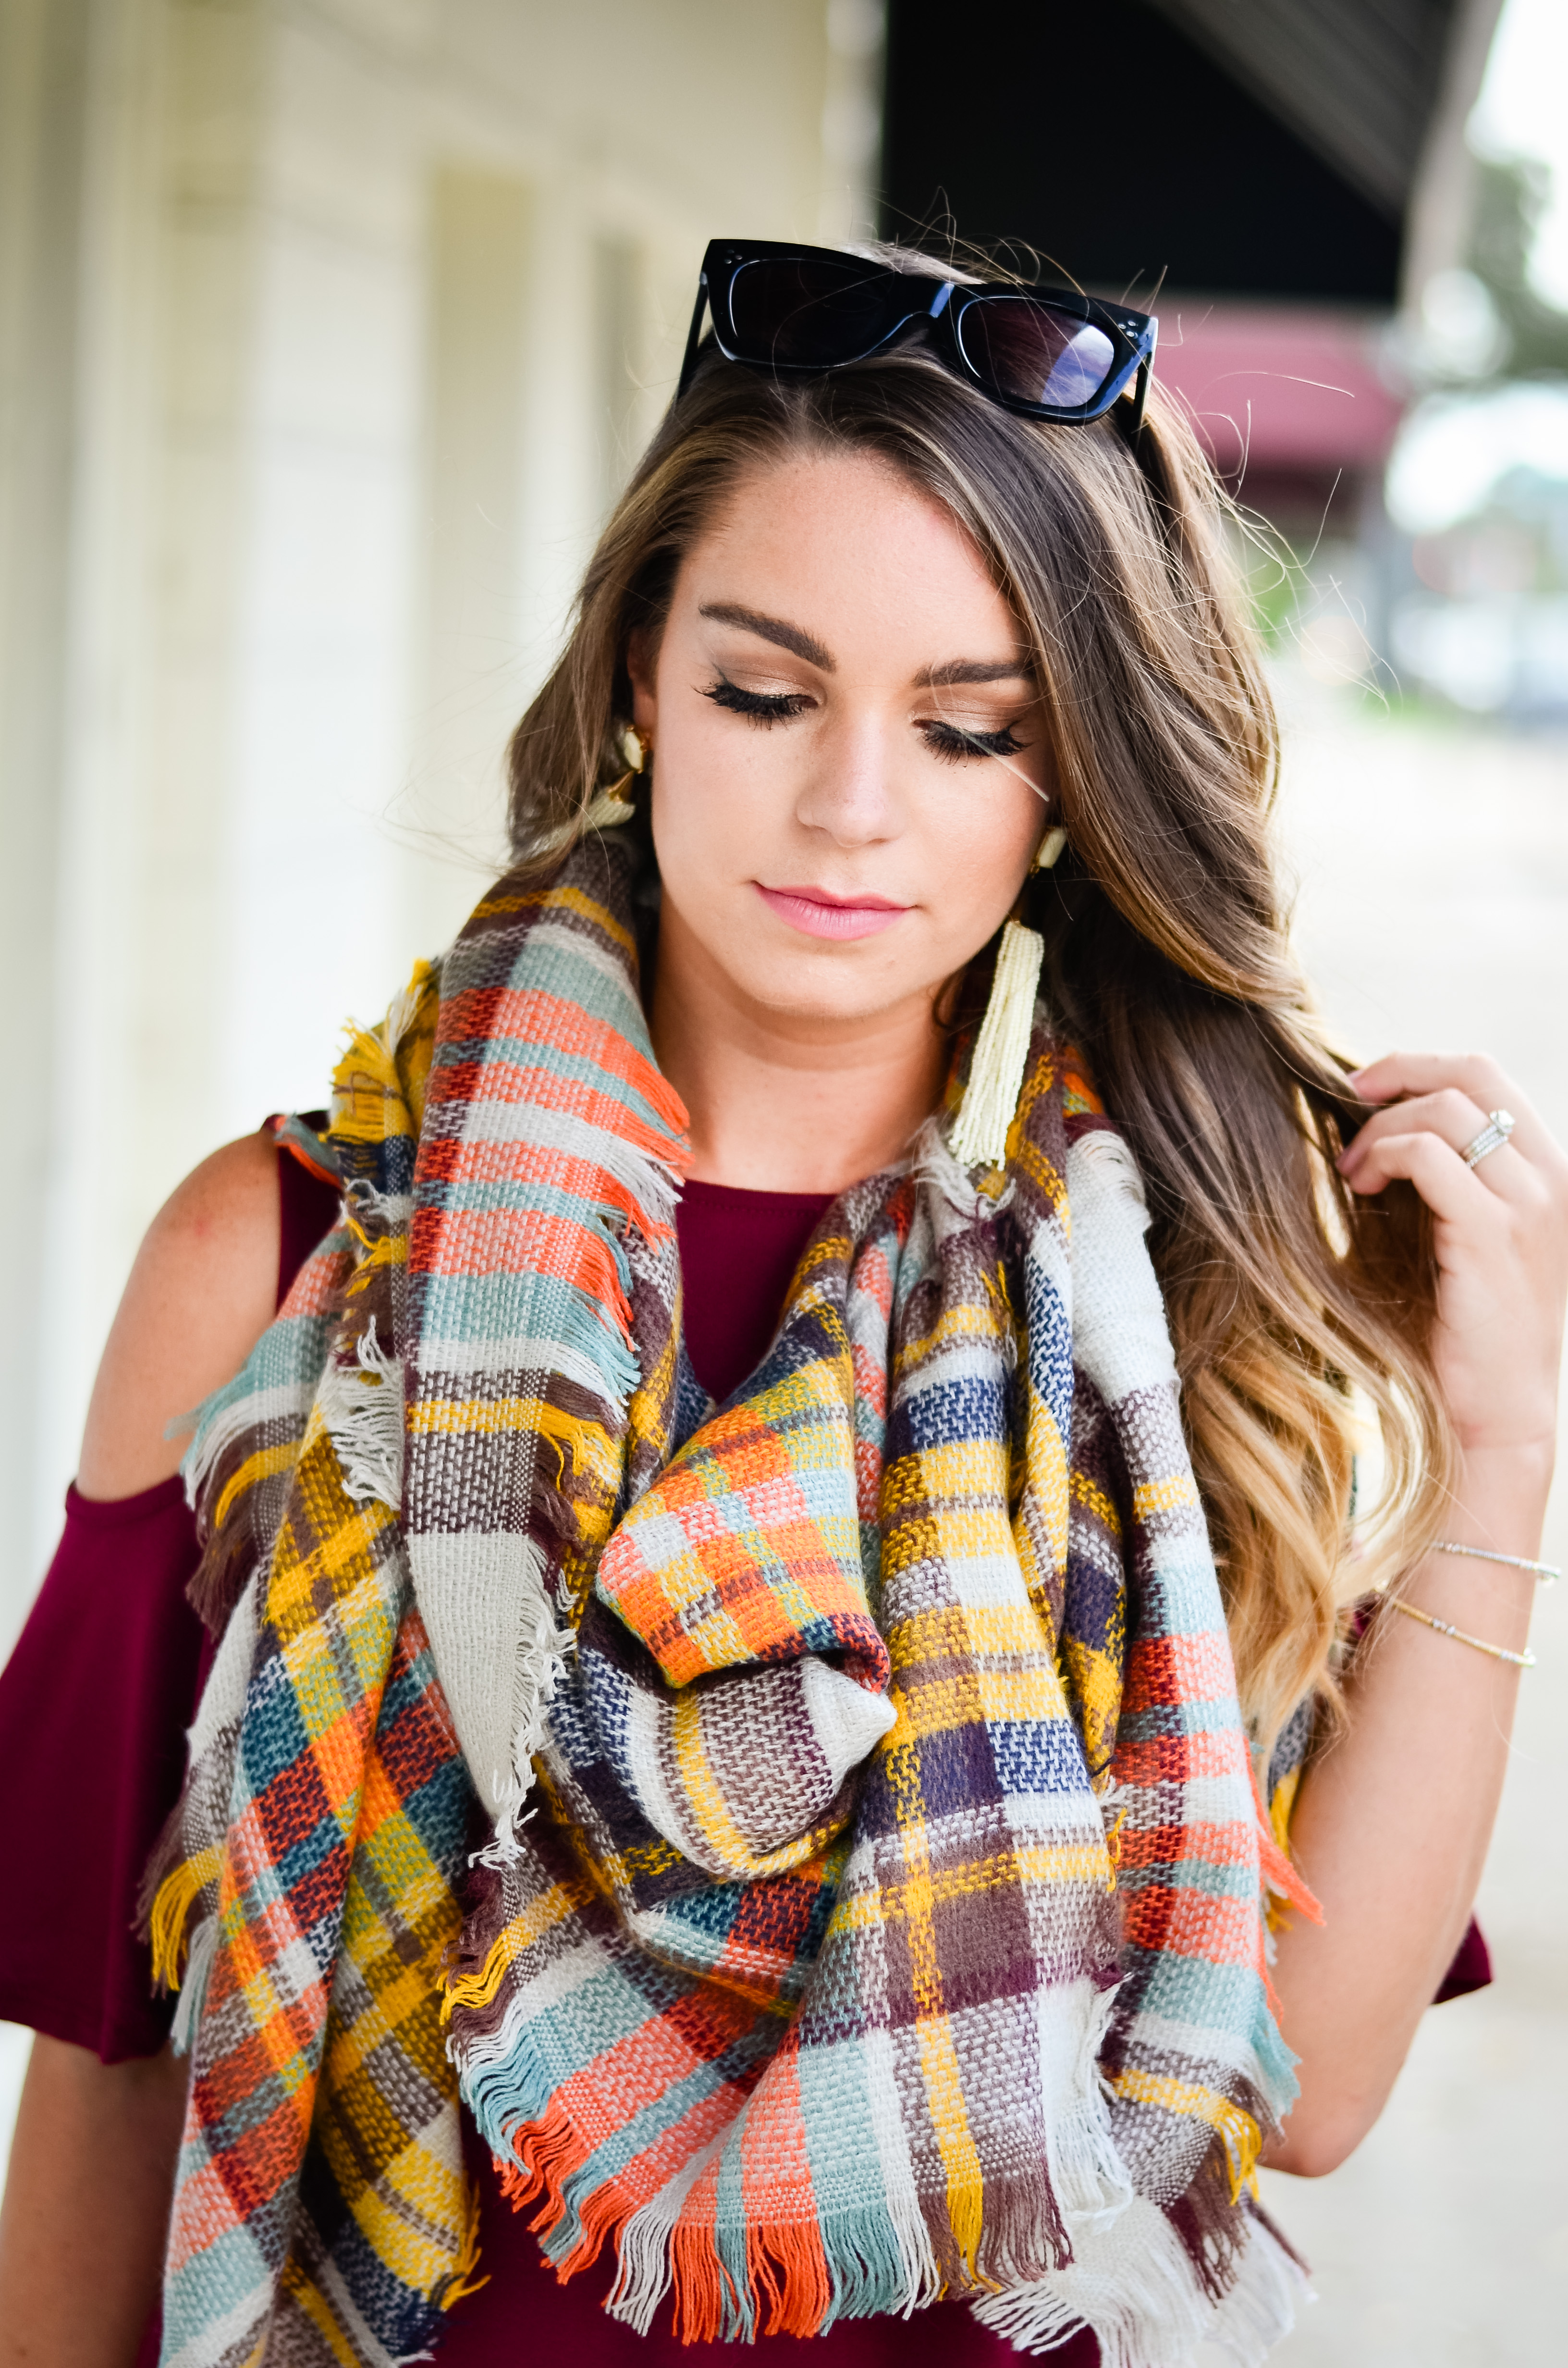 maroon-dress-blanket-scarf-goldfinch-23